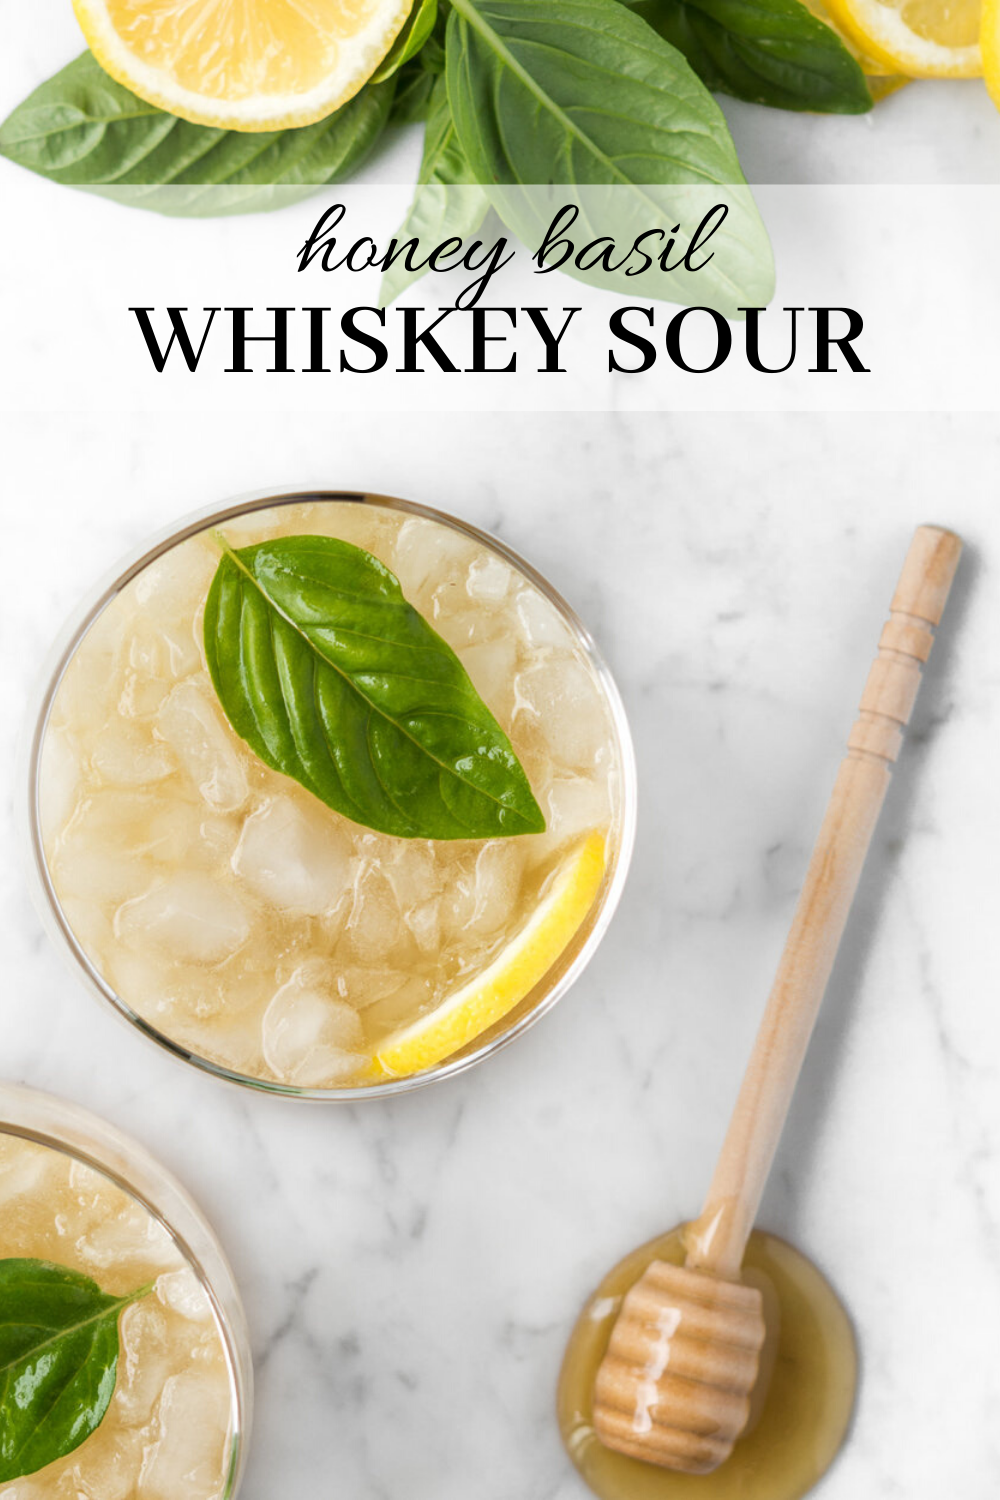 Photo of honey basil whiskey sour